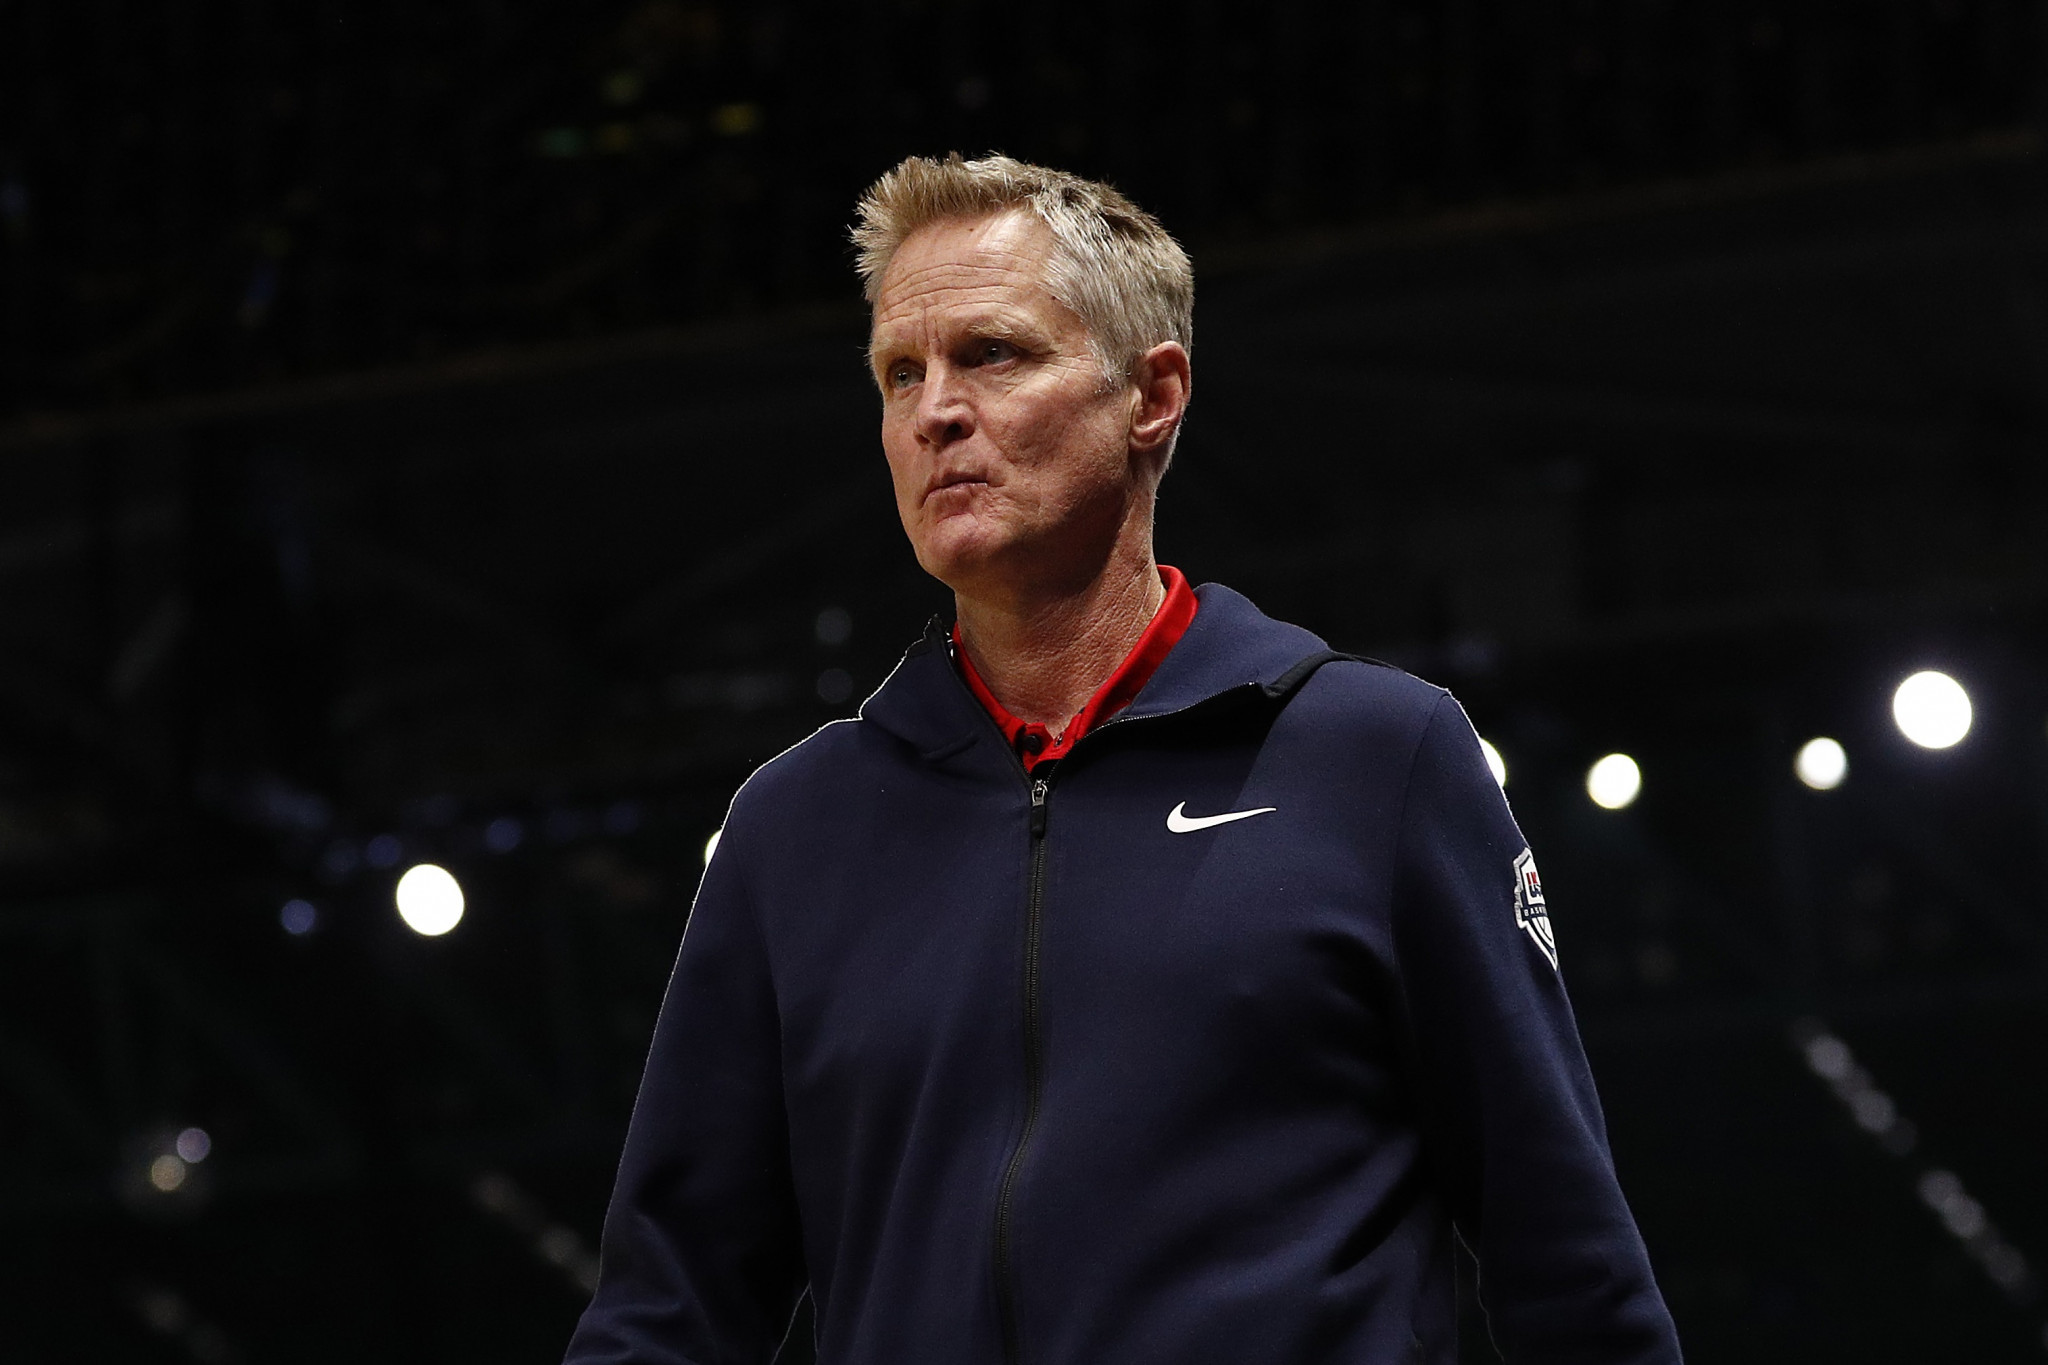 USA Basketball coaches continuing Tokyo 2020 preparations as normal